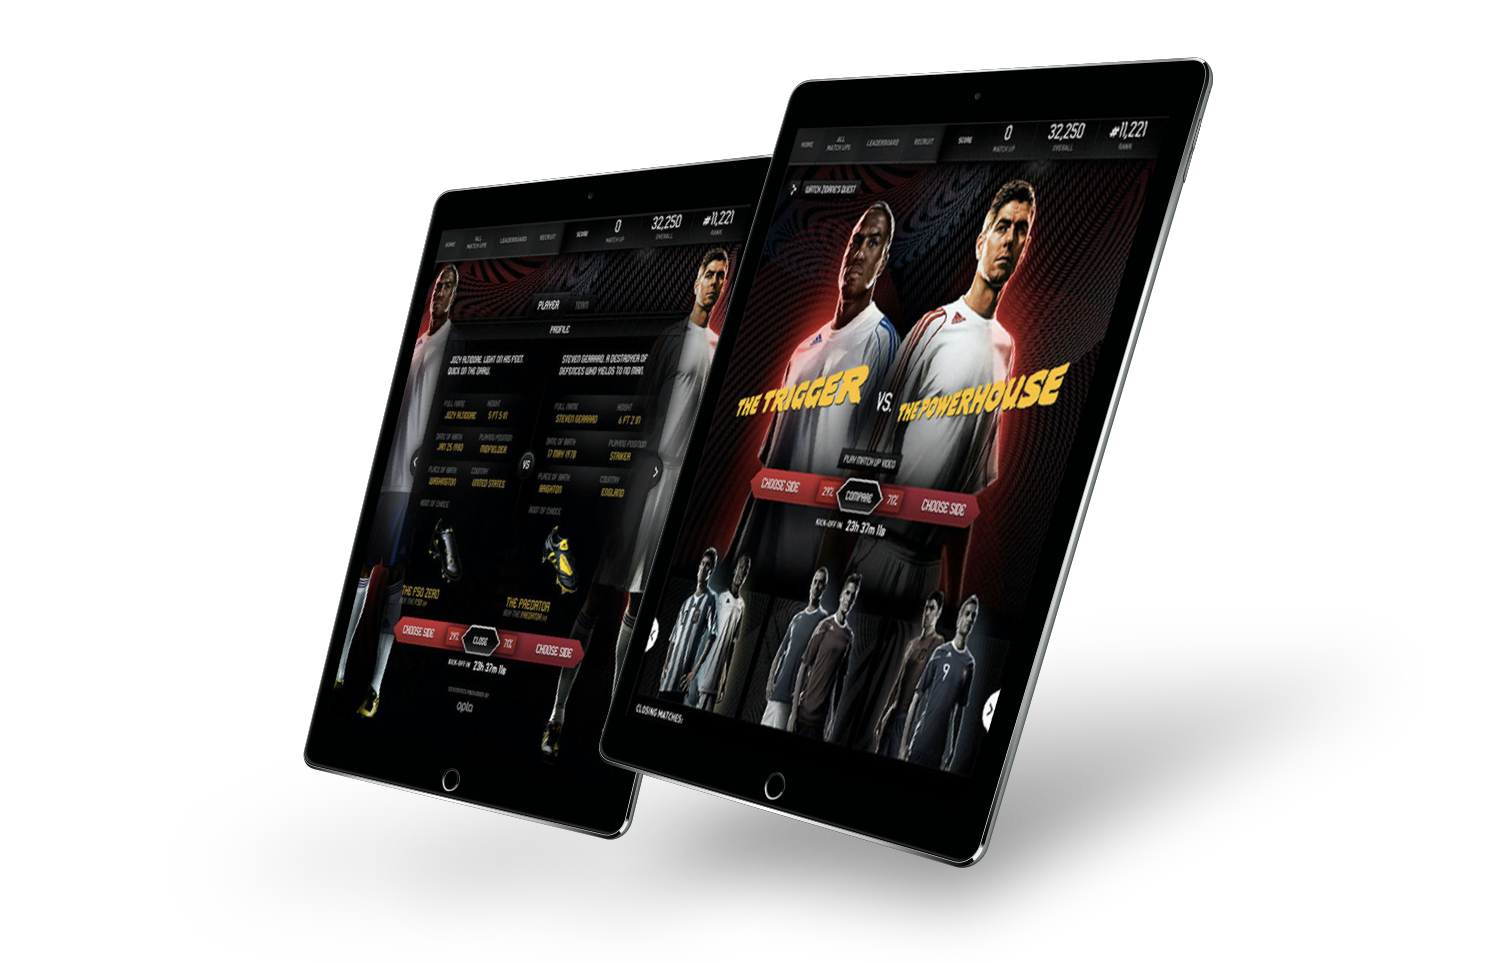 adidas Match Ups was a first-of-it- kind second screen experience in social that allowed fans to make game predictions for each world cup match, and then view and share outcomes in realtime as games unfolded.